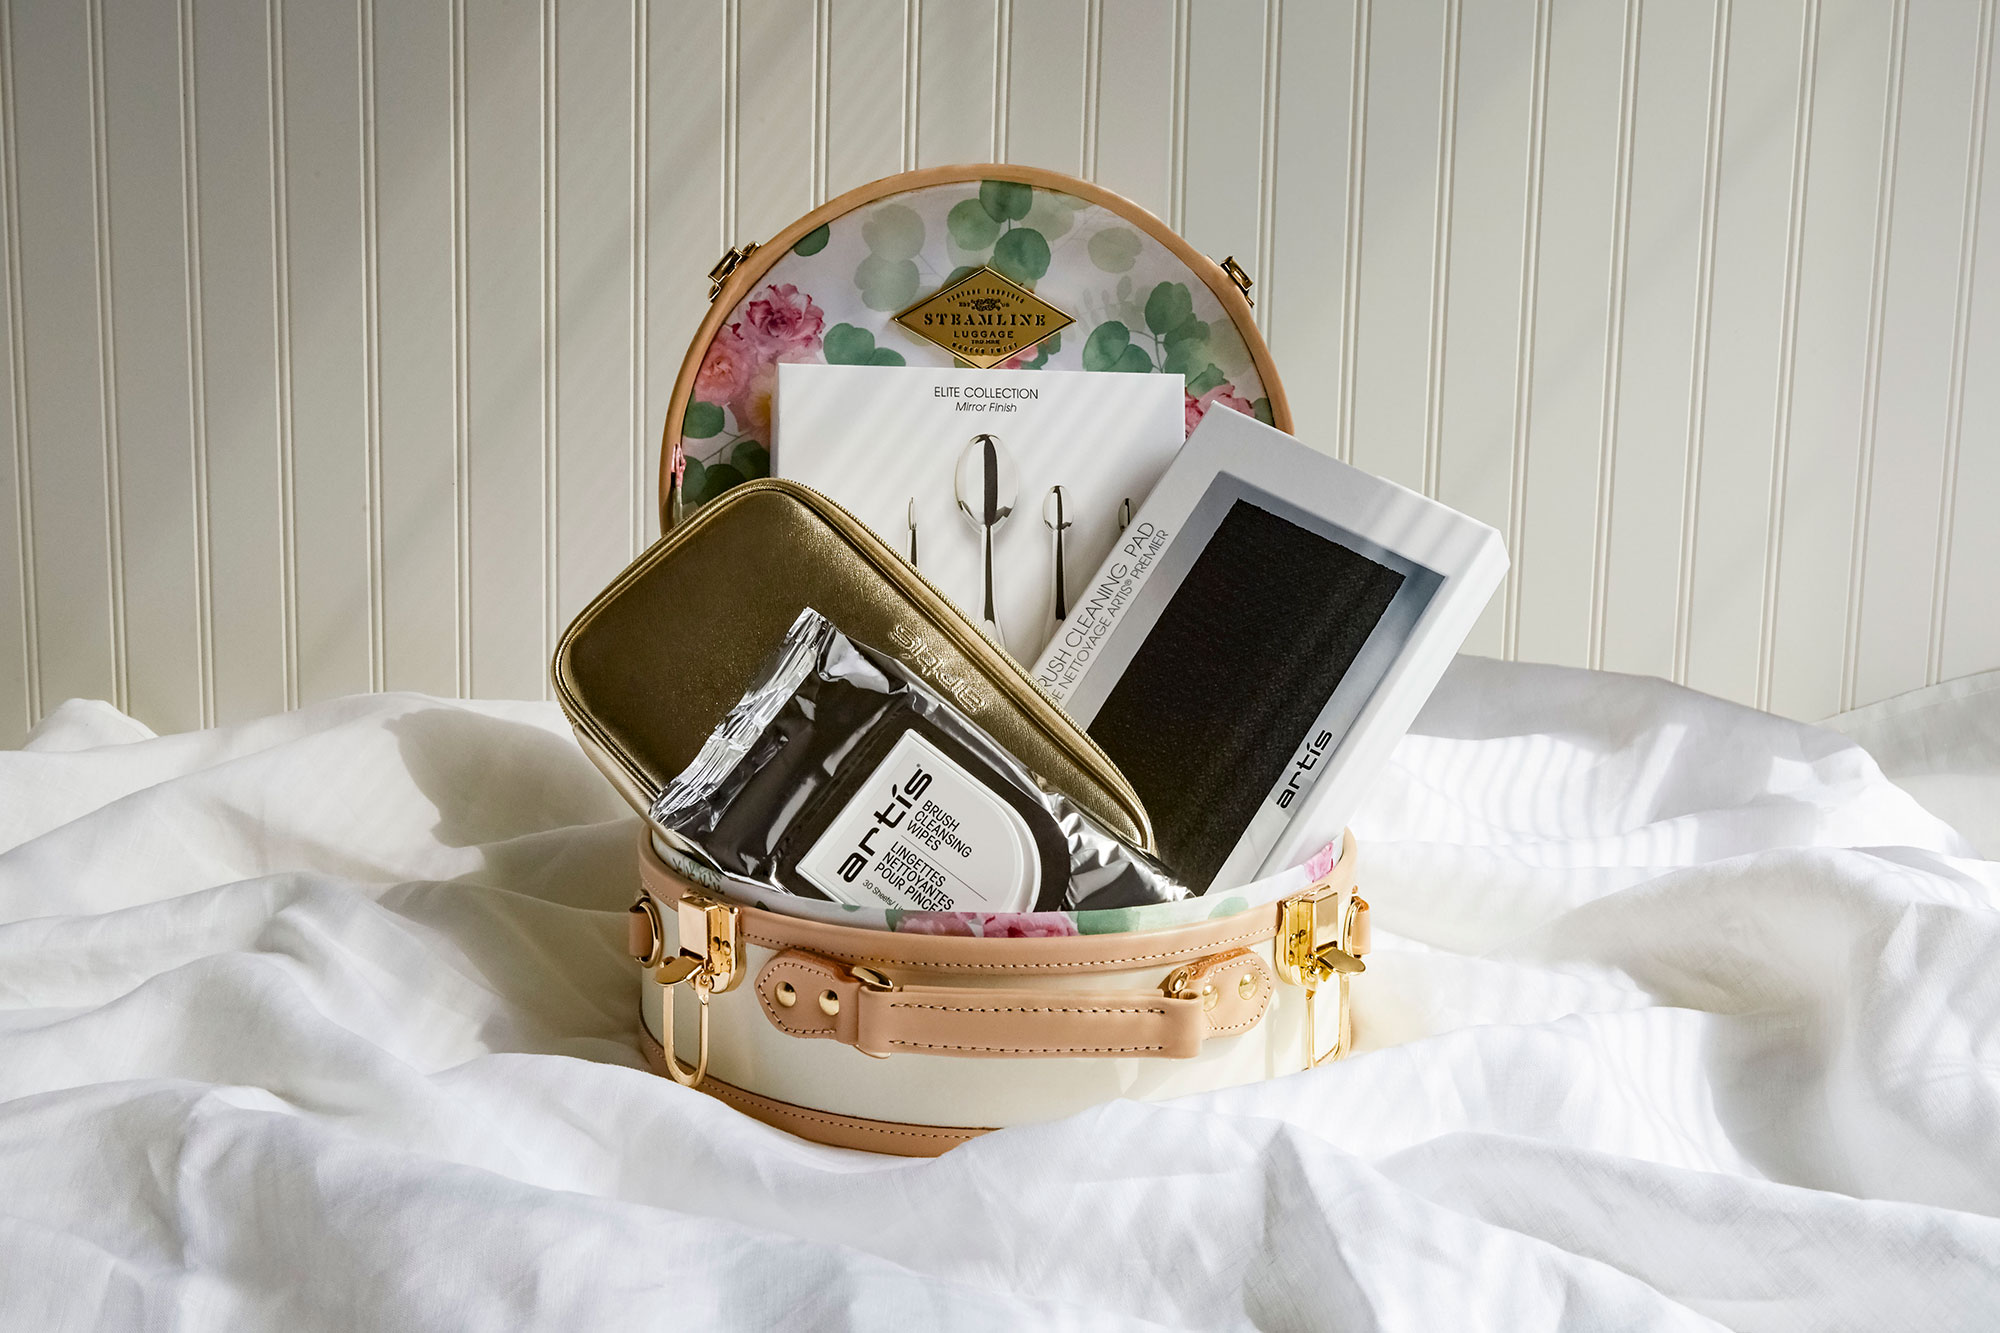 Mother's Day Gift Guide Artis The Queen Mother Gift Set - The innovative makeup brush and skincare brand teamed with the travel experts at SteamLine Luggage to create this posh kit that includes a retro-glam hat box filled with luxe brushes and accessories. $400, artisbrush.com